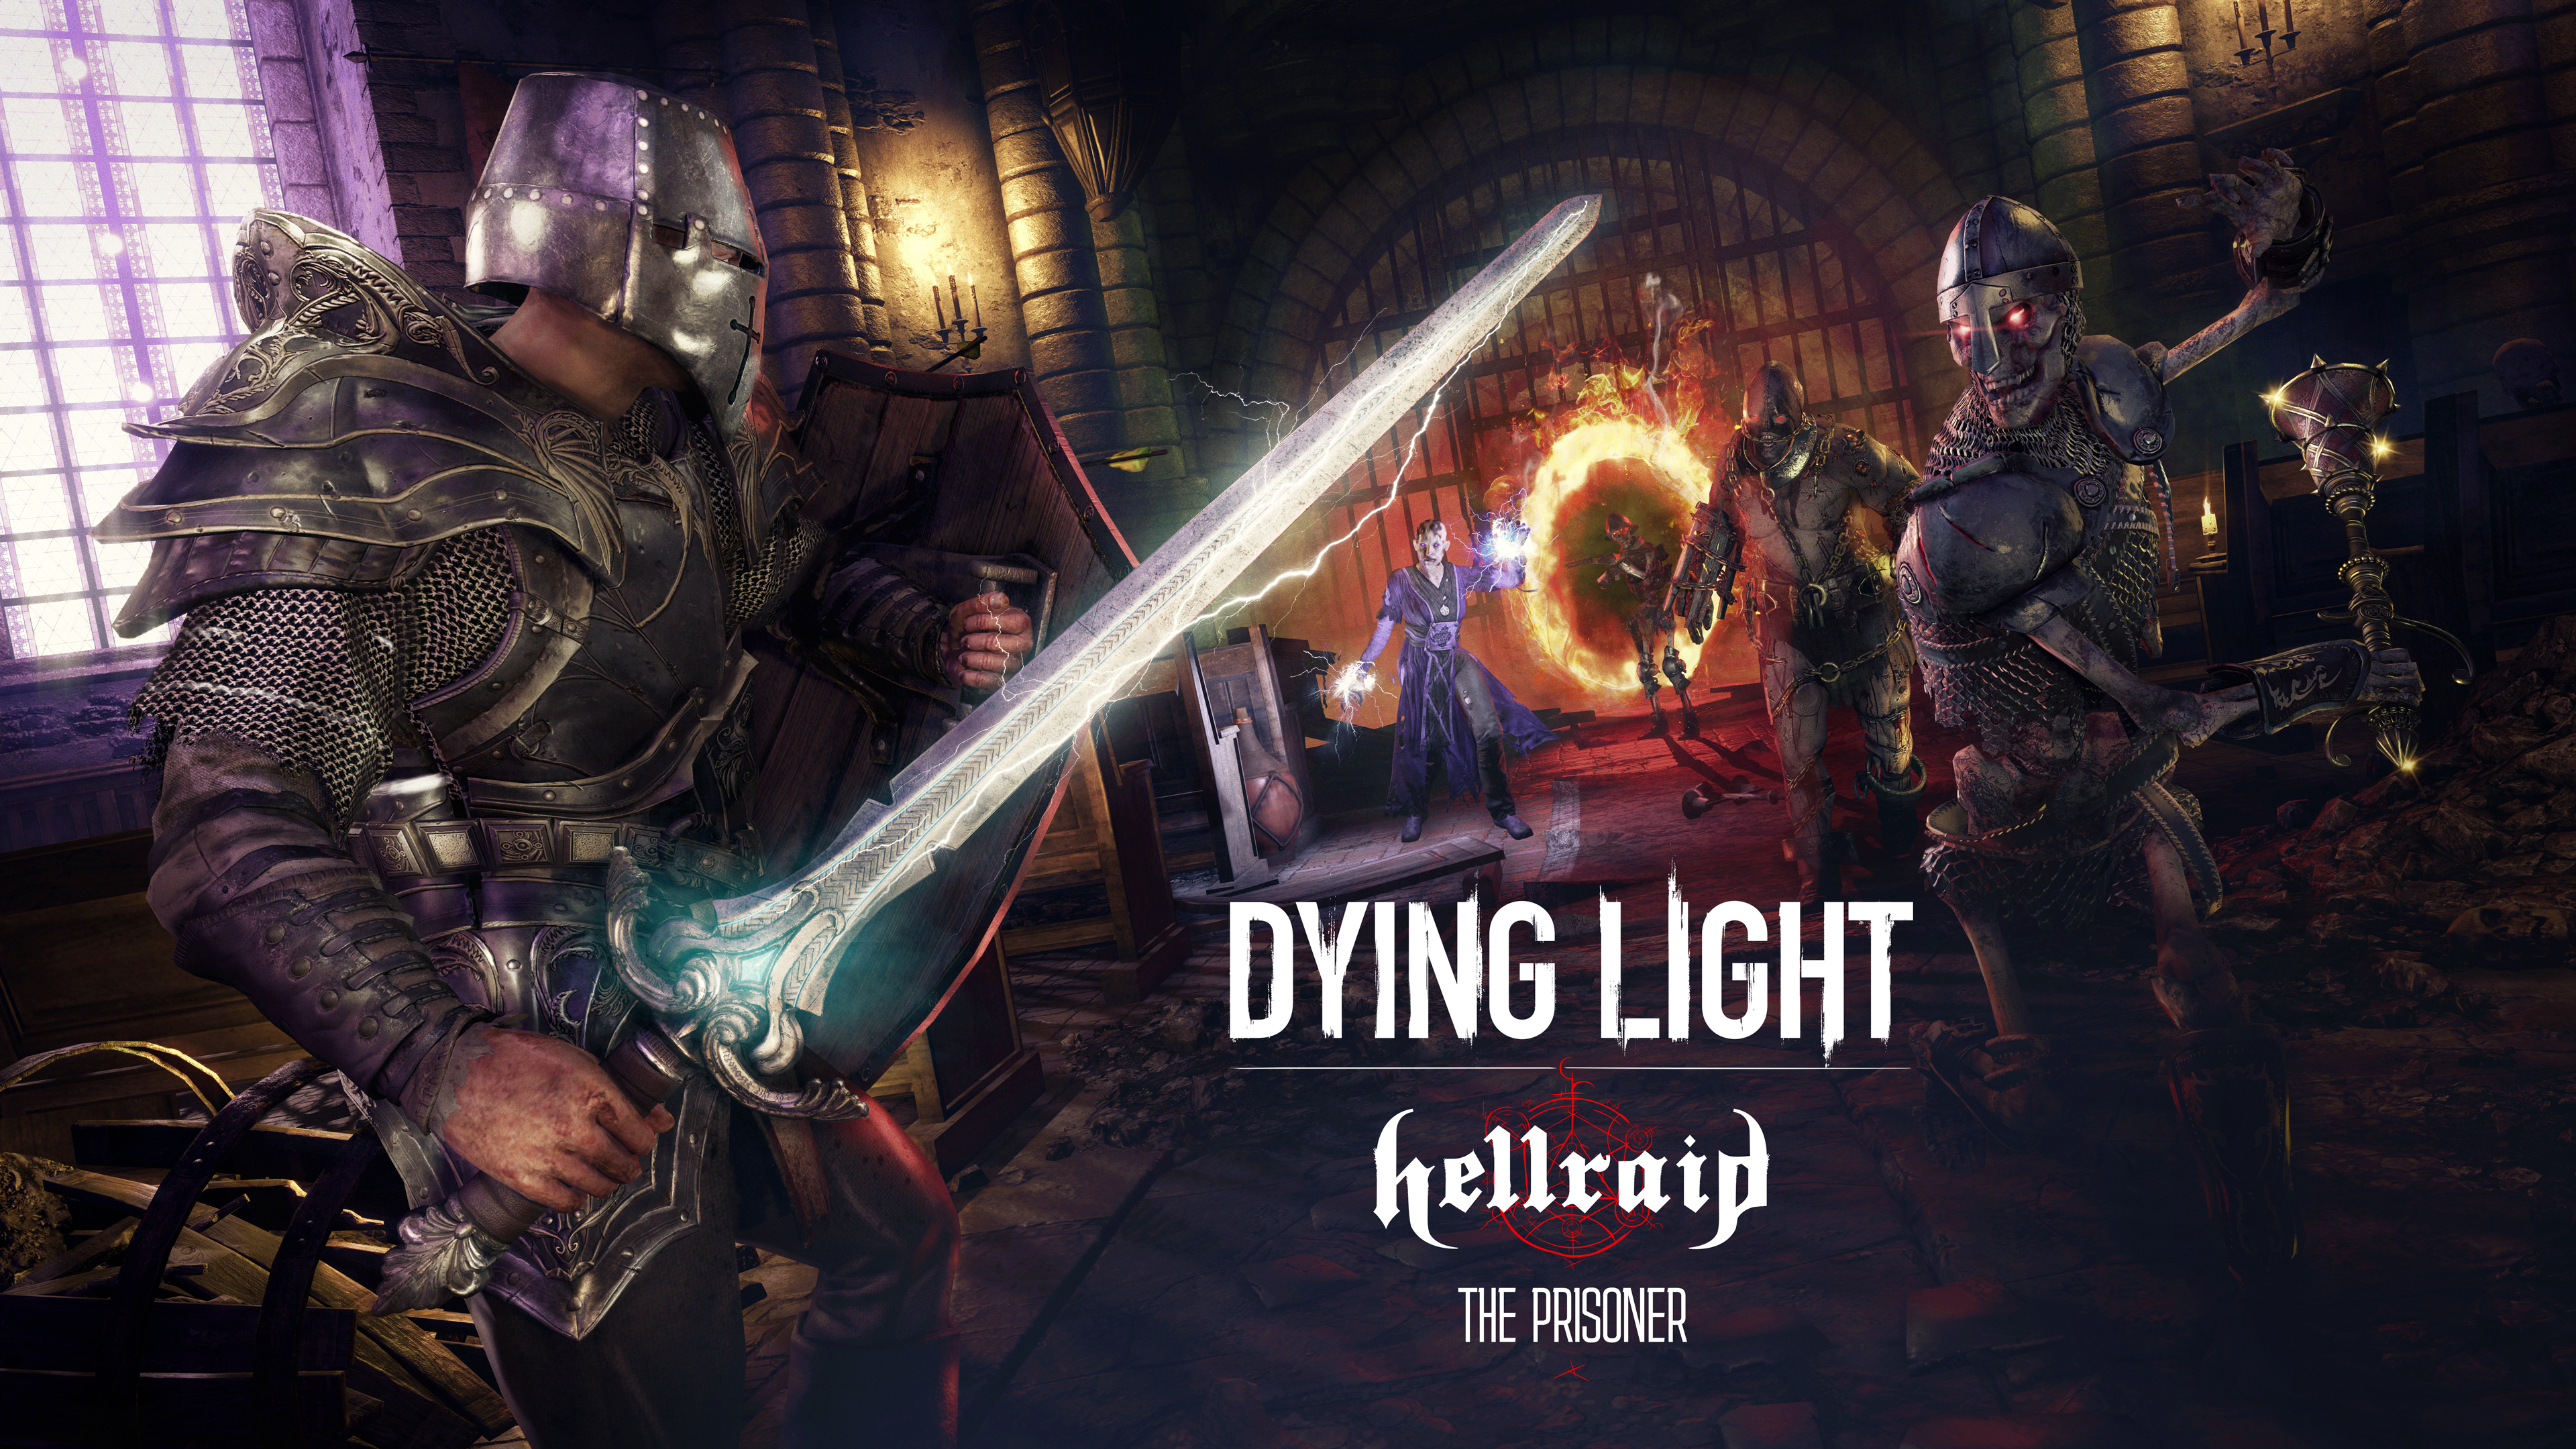 dying light, hellraid, expansion, dlc, update, story mode, techland, medieval, zombie, pc, slasher, xbox, xbox one, pc, playstation 4, ps4, sony, microsoft